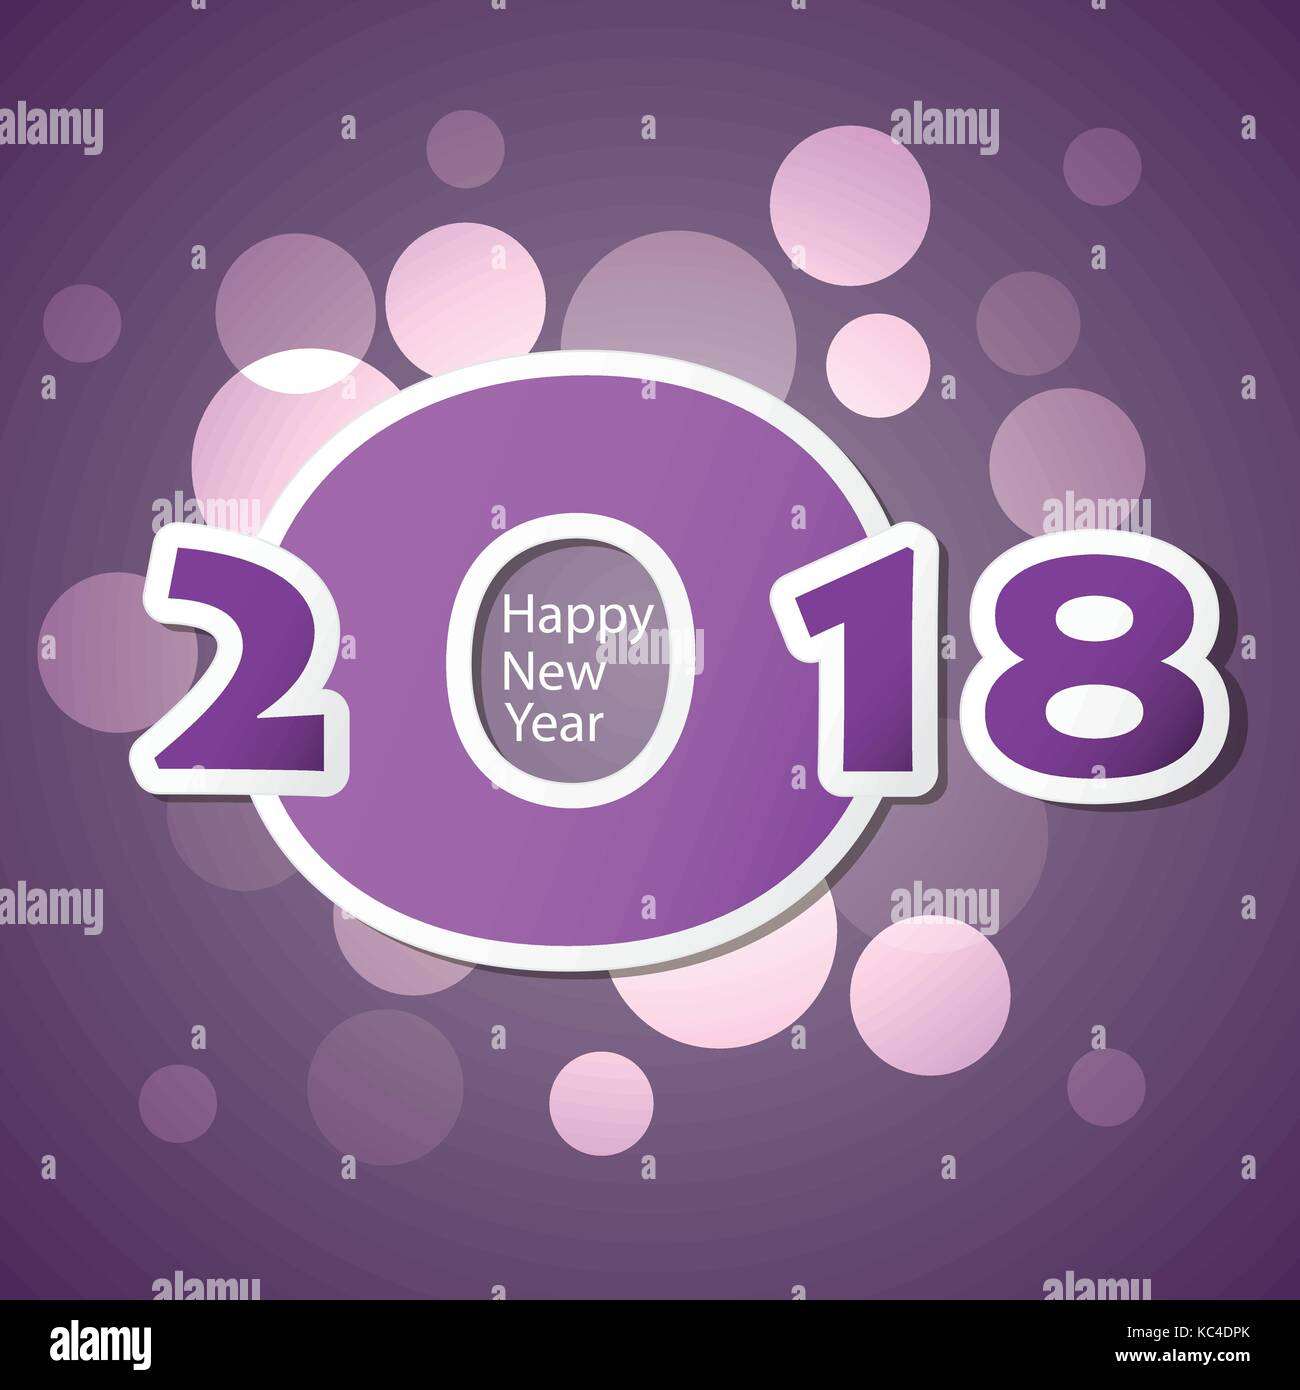 Best wishes abstract modern style happy new year greeting card or best wishes abstract modern style happy new year greeting card or background creative design template 2018 m4hsunfo